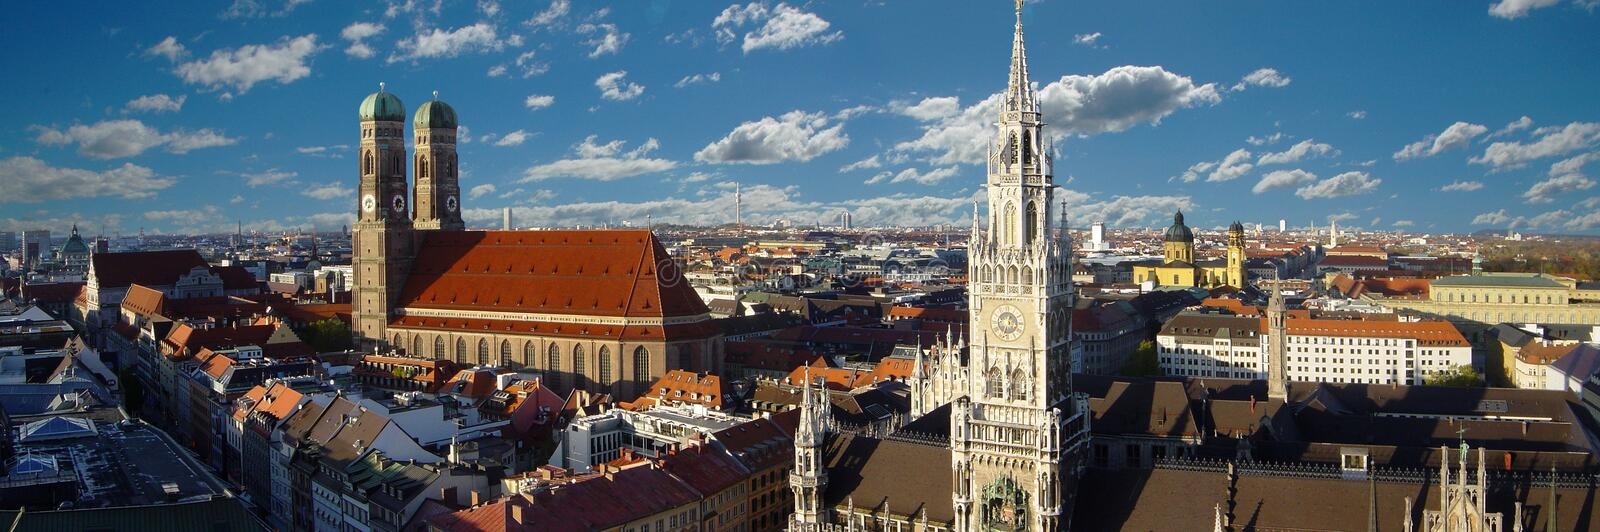 munich panorama